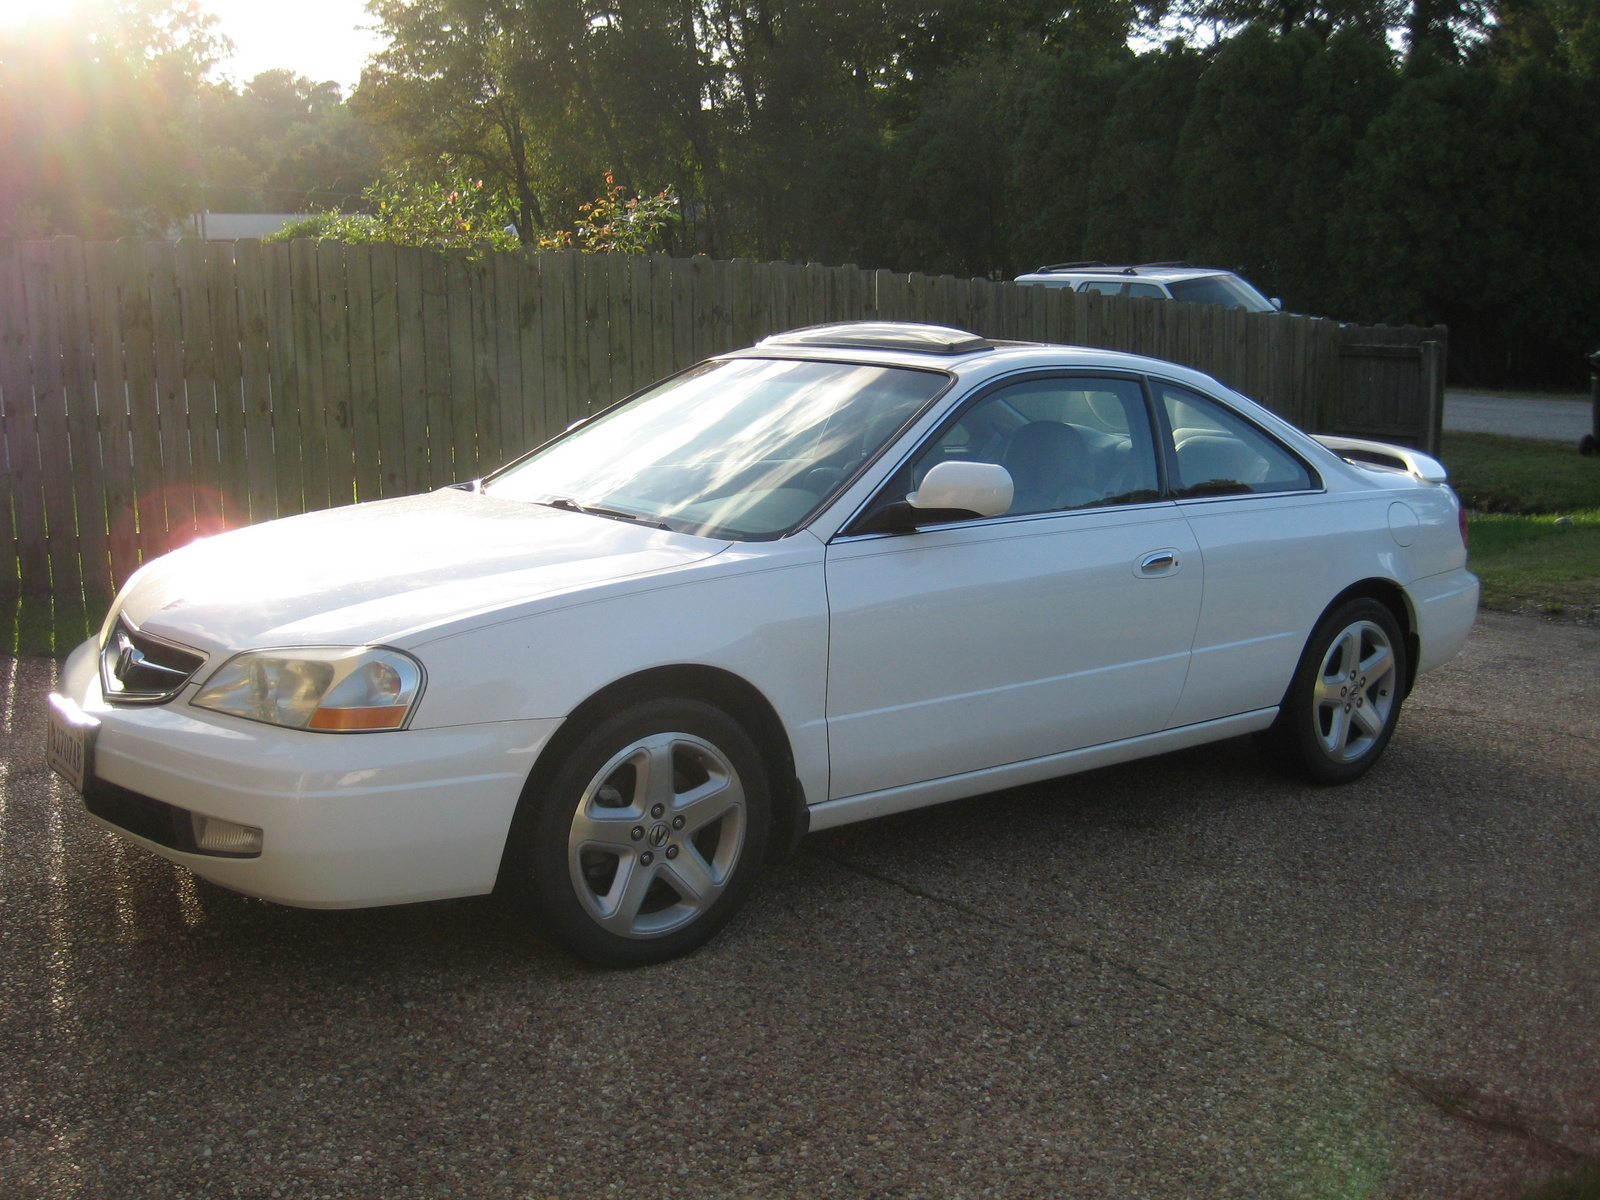 picture of 2001 acura cl 3 2 type s exterior. Black Bedroom Furniture Sets. Home Design Ideas